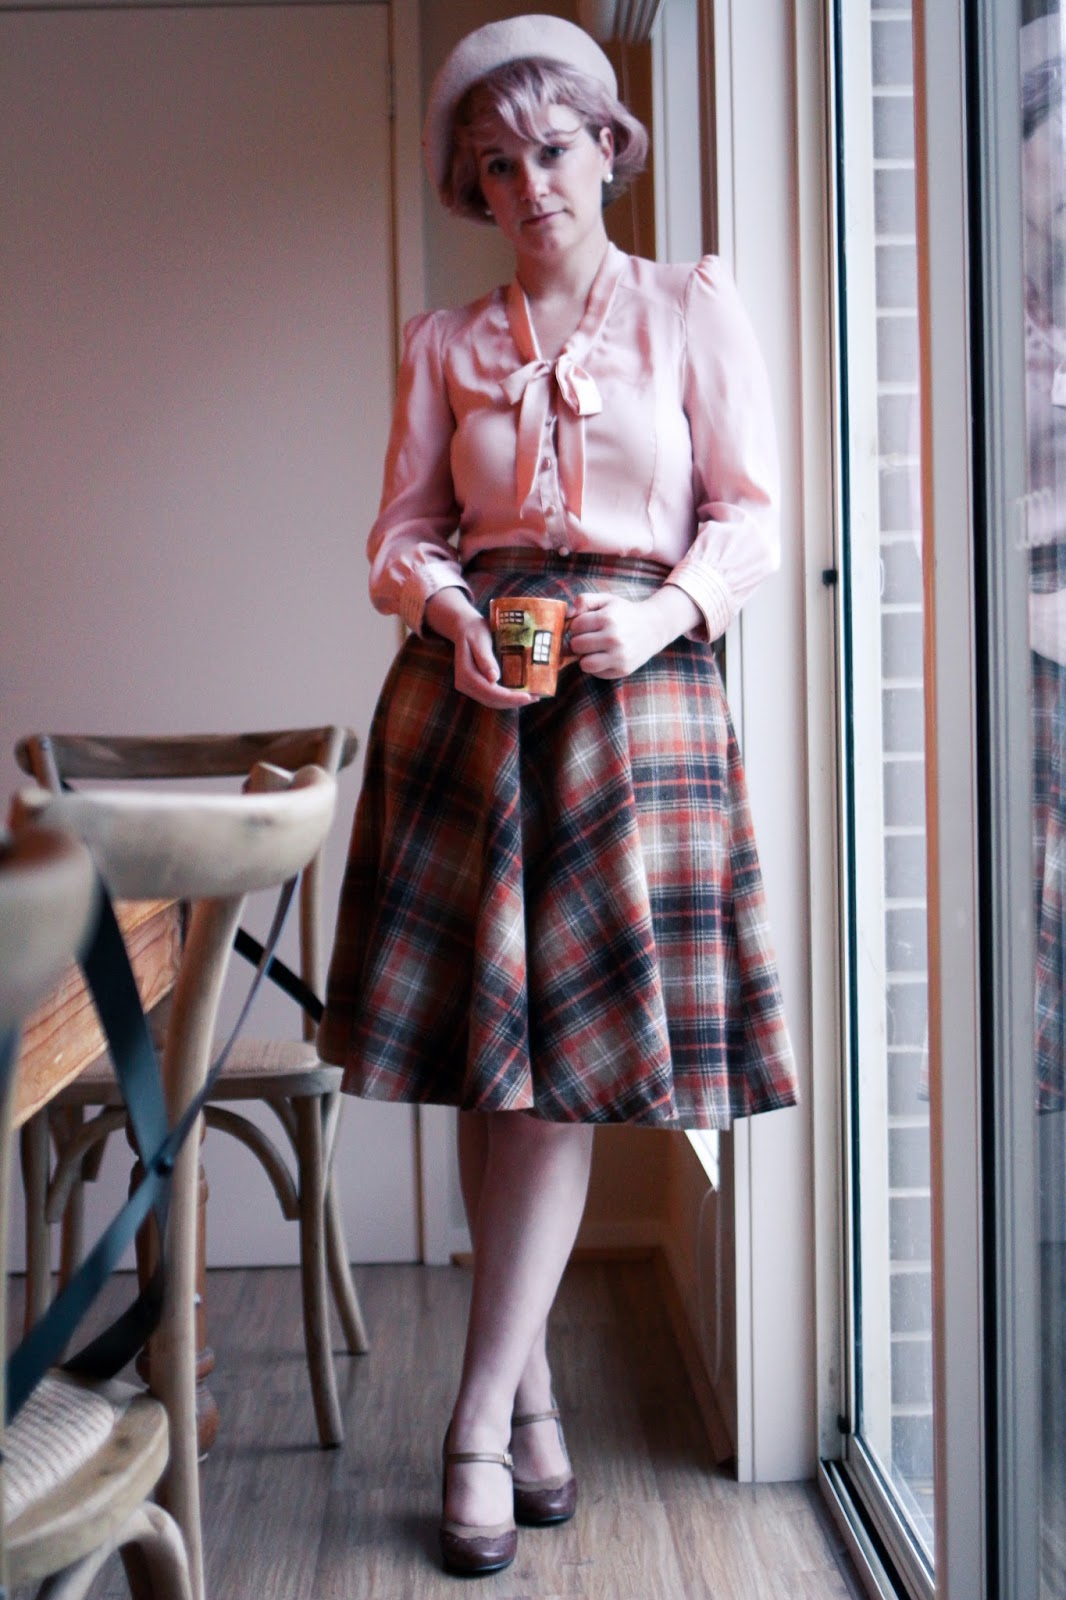 Liana of Finding Femme in Review pink 'money penny' pussy bow blouse, orange tartan Modcloth circle skirt and Modcloth wedge heels with pink felted beret.